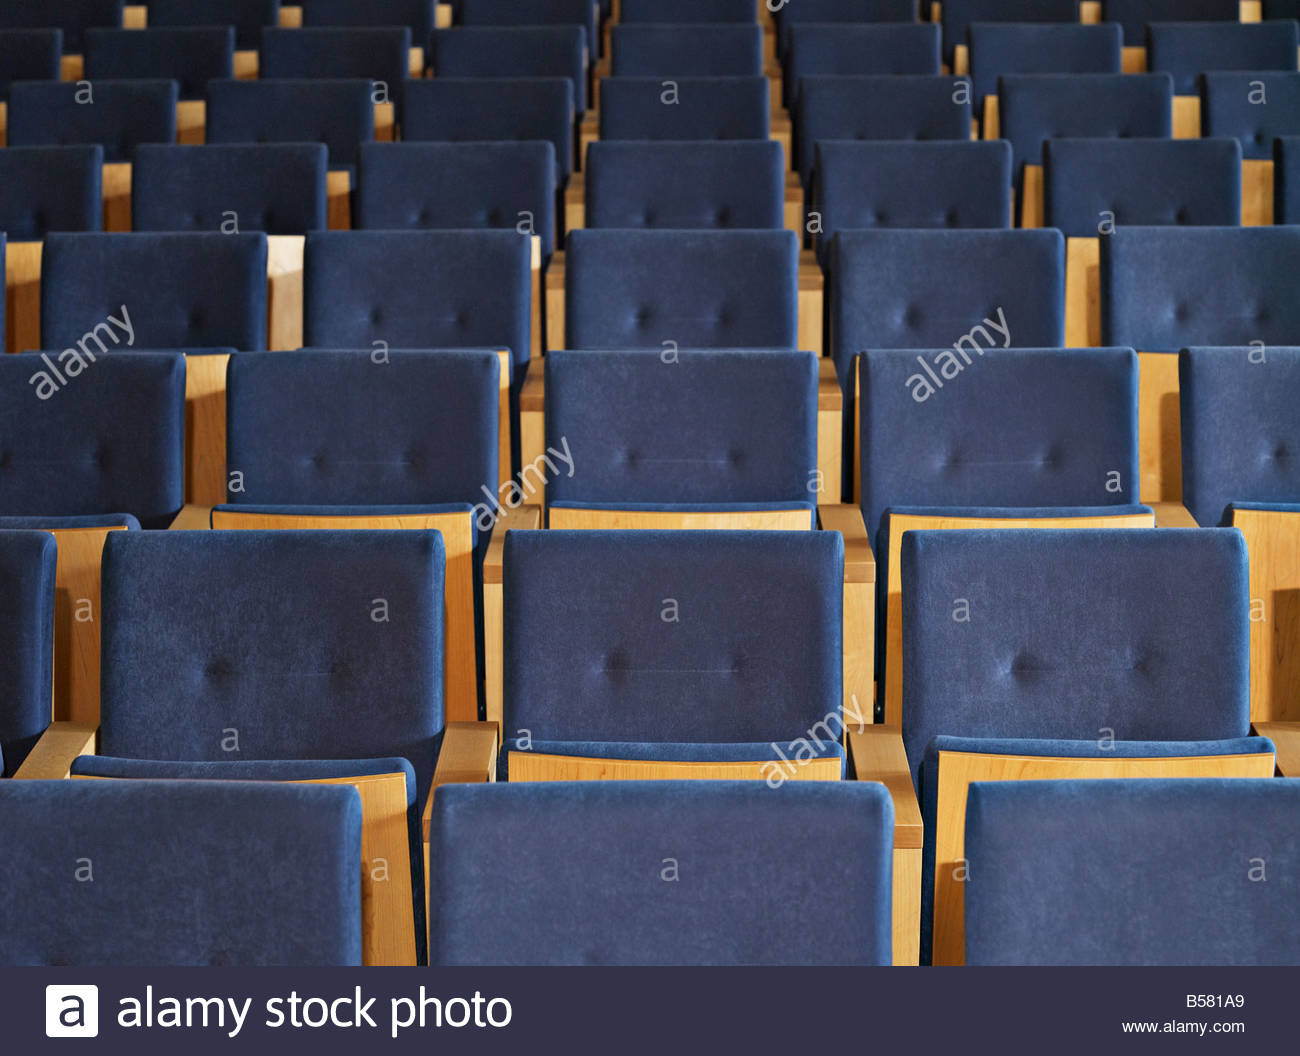 Rows of empty seats in conference room - Stock Image